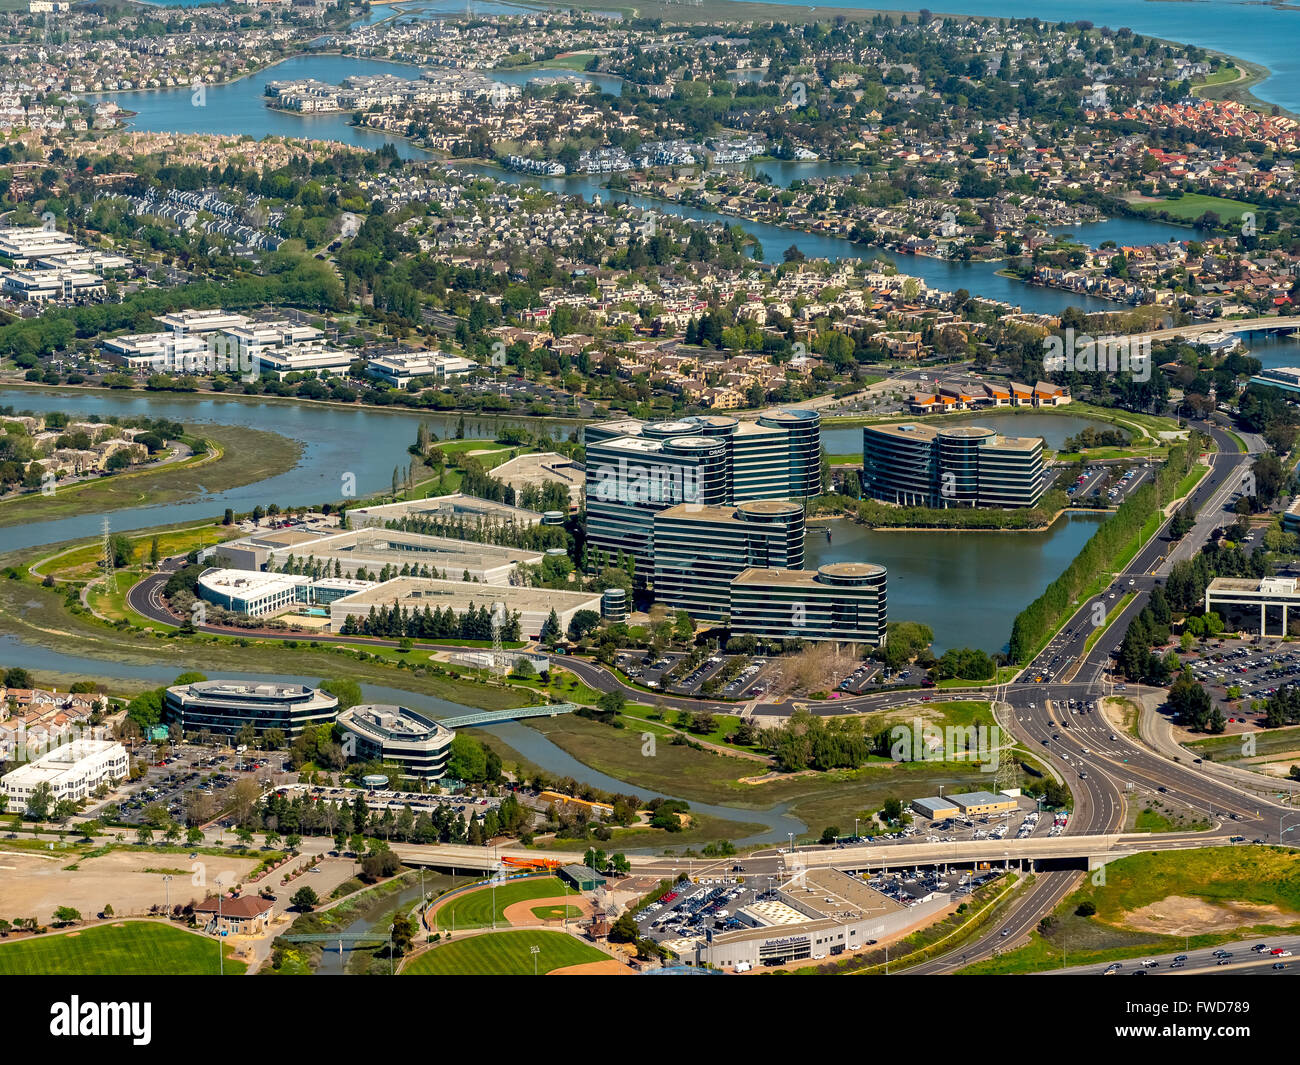 Oracle's headquarters in Redwood shores, Silicon Valley, California, United States of America, Santa Clara, - Stock Image